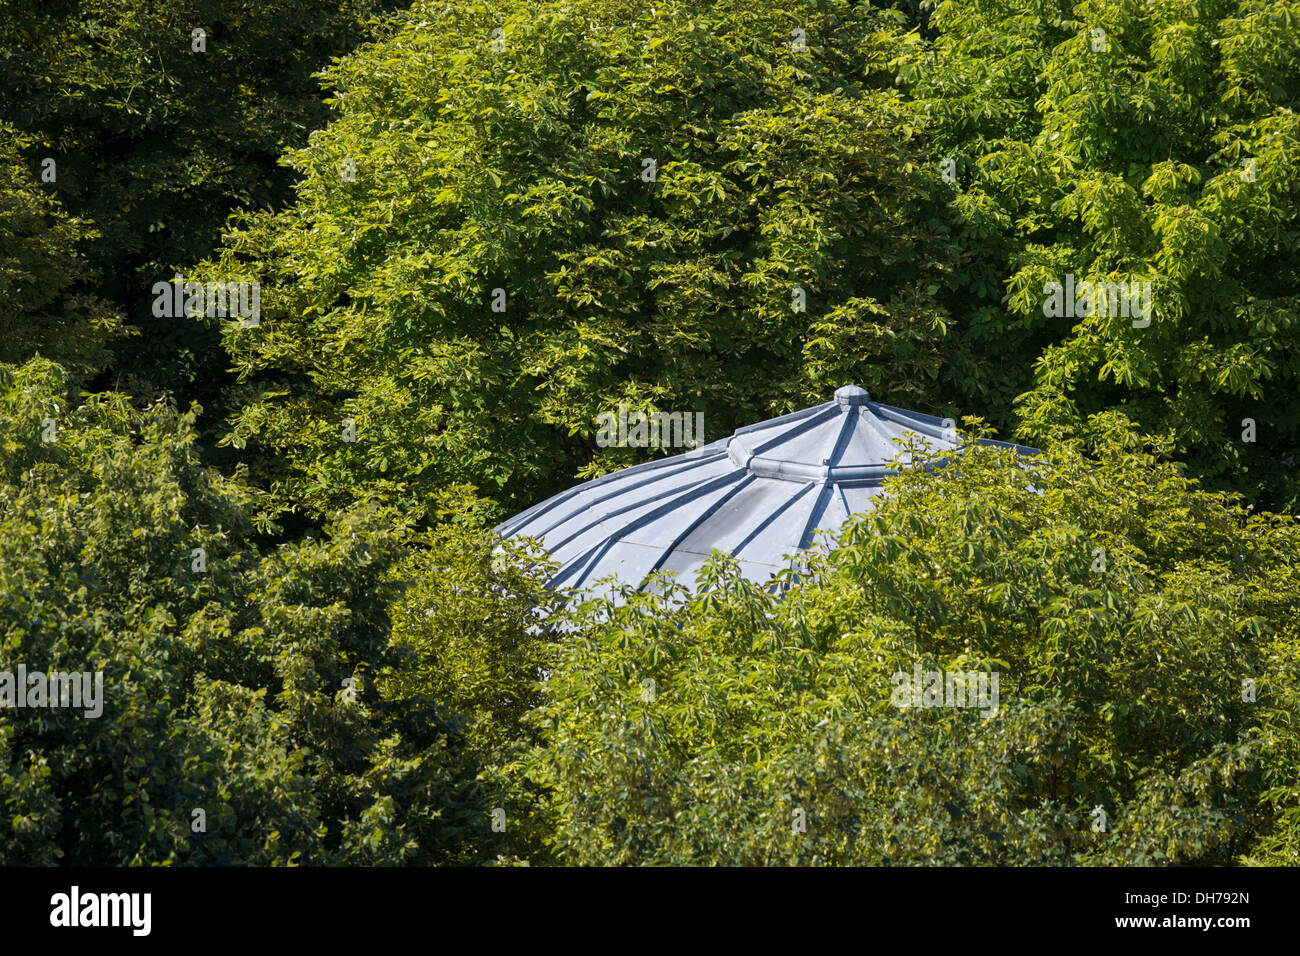 Bandstand Canopy Stock Photos Amp Bandstand Canopy Stock